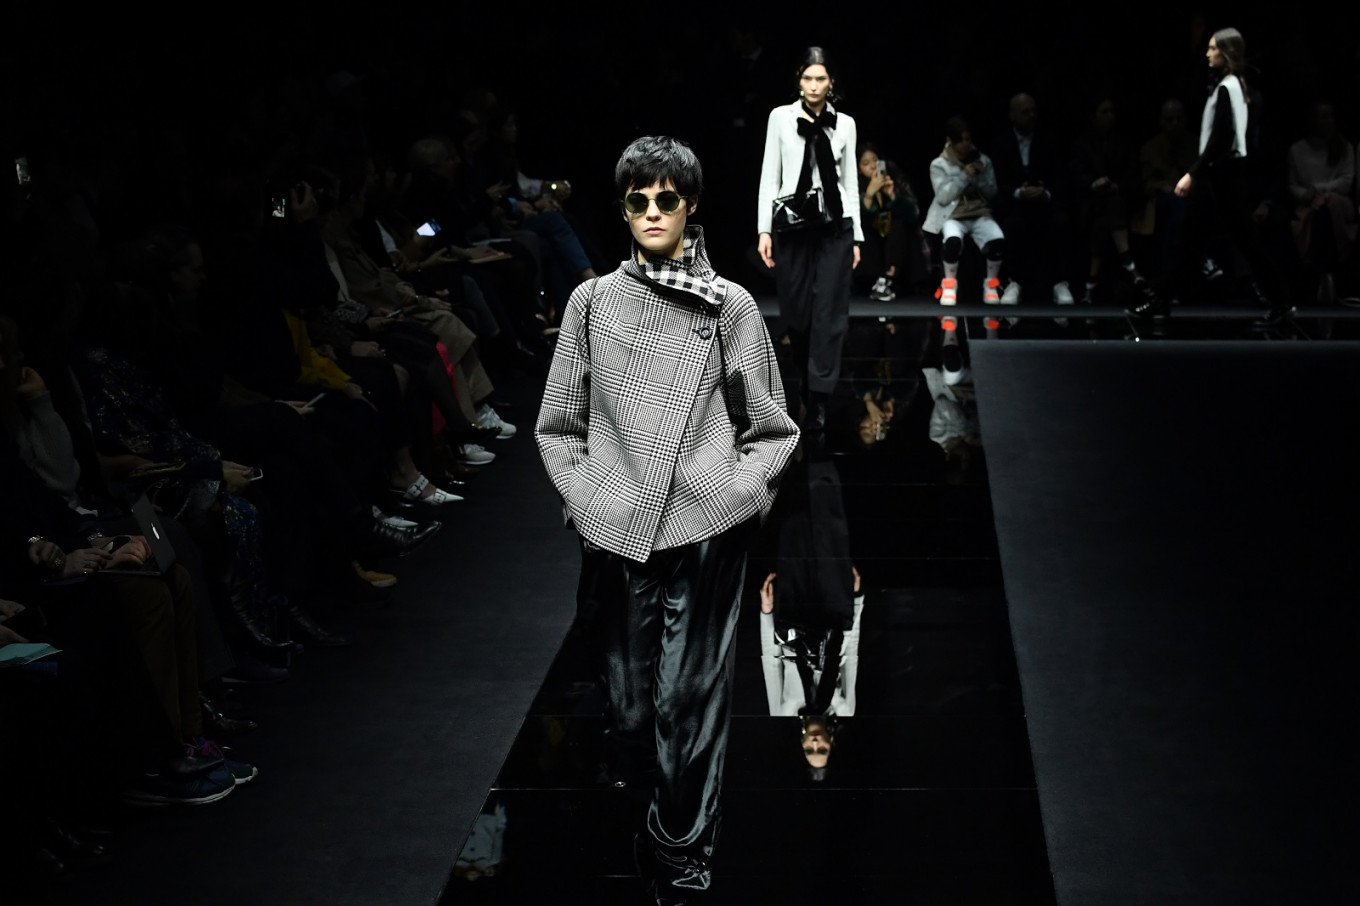 Armani takes over prime-time TV for catwalk in the time of COVID